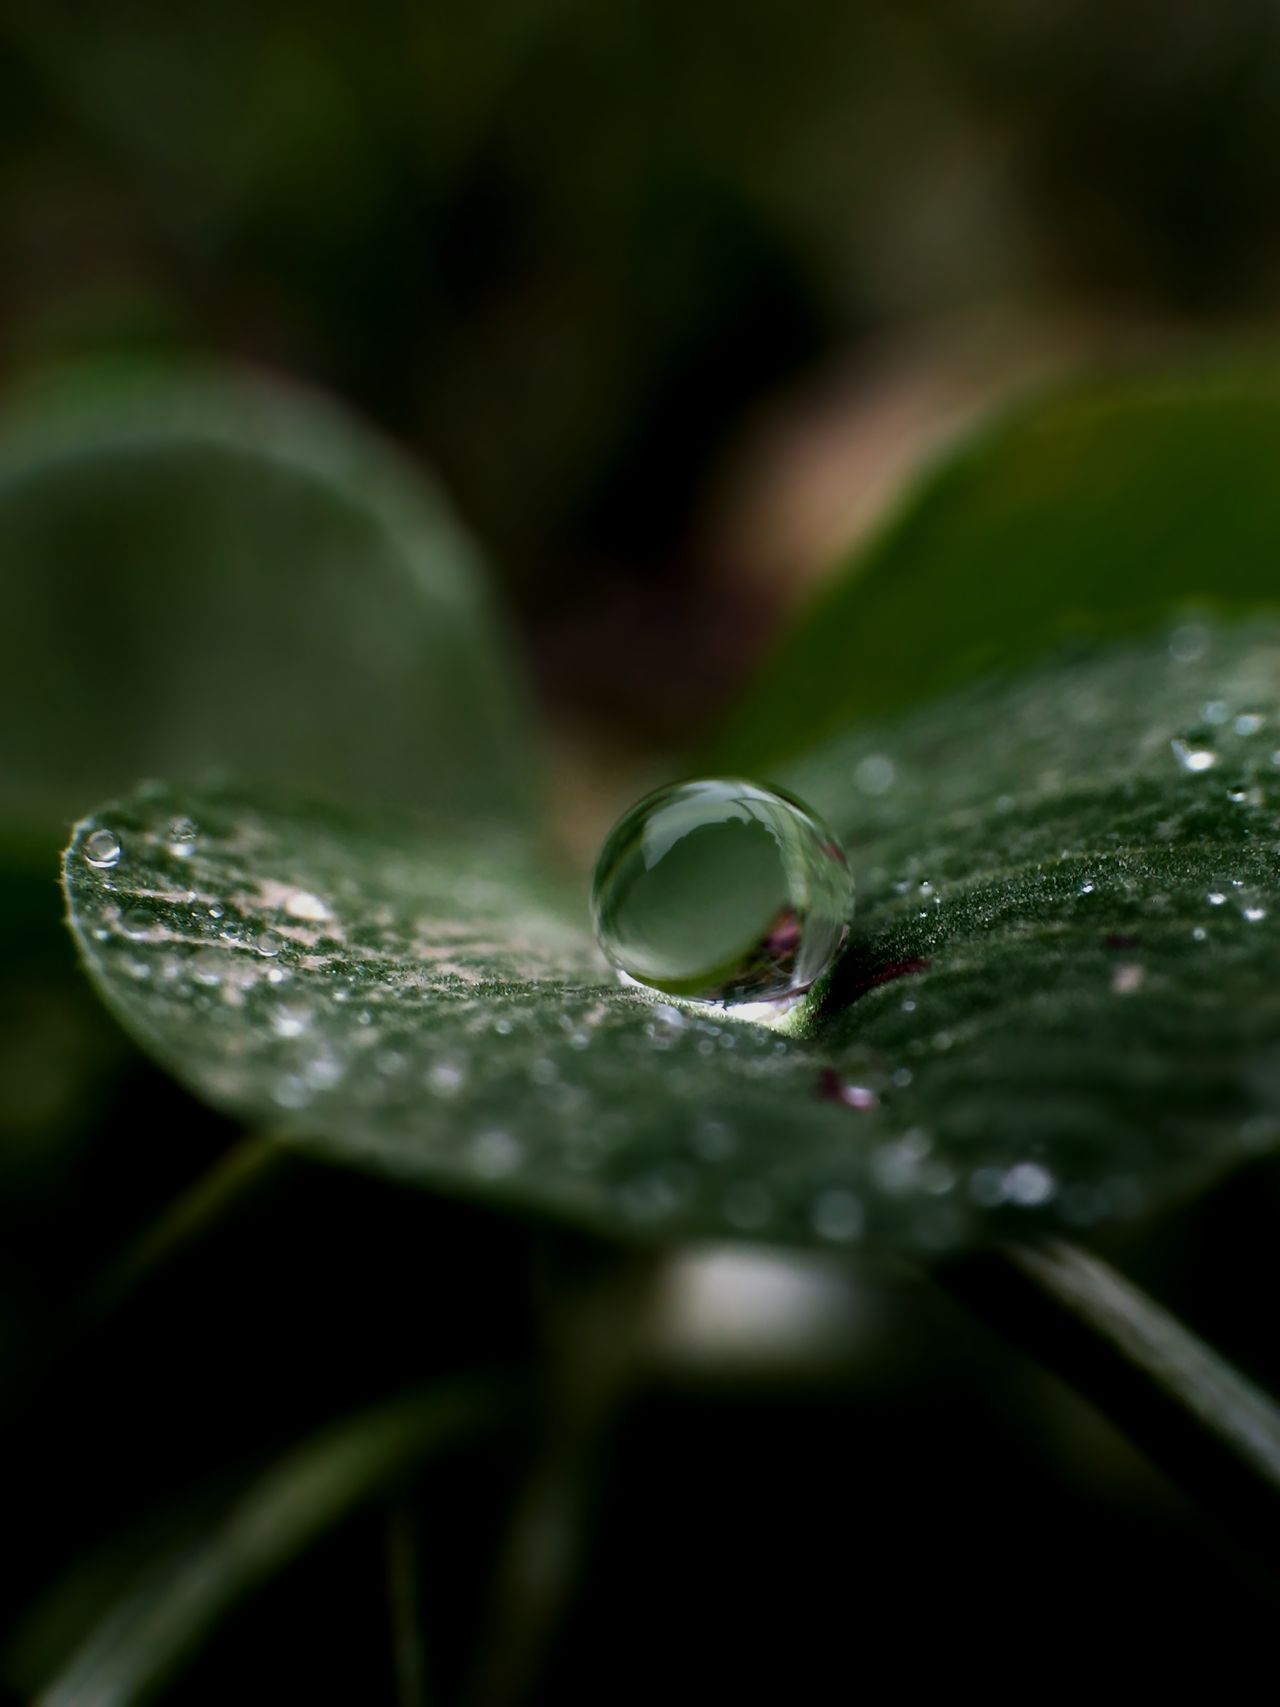 Beautiful stock photos of nature, leaf, wet, close-up